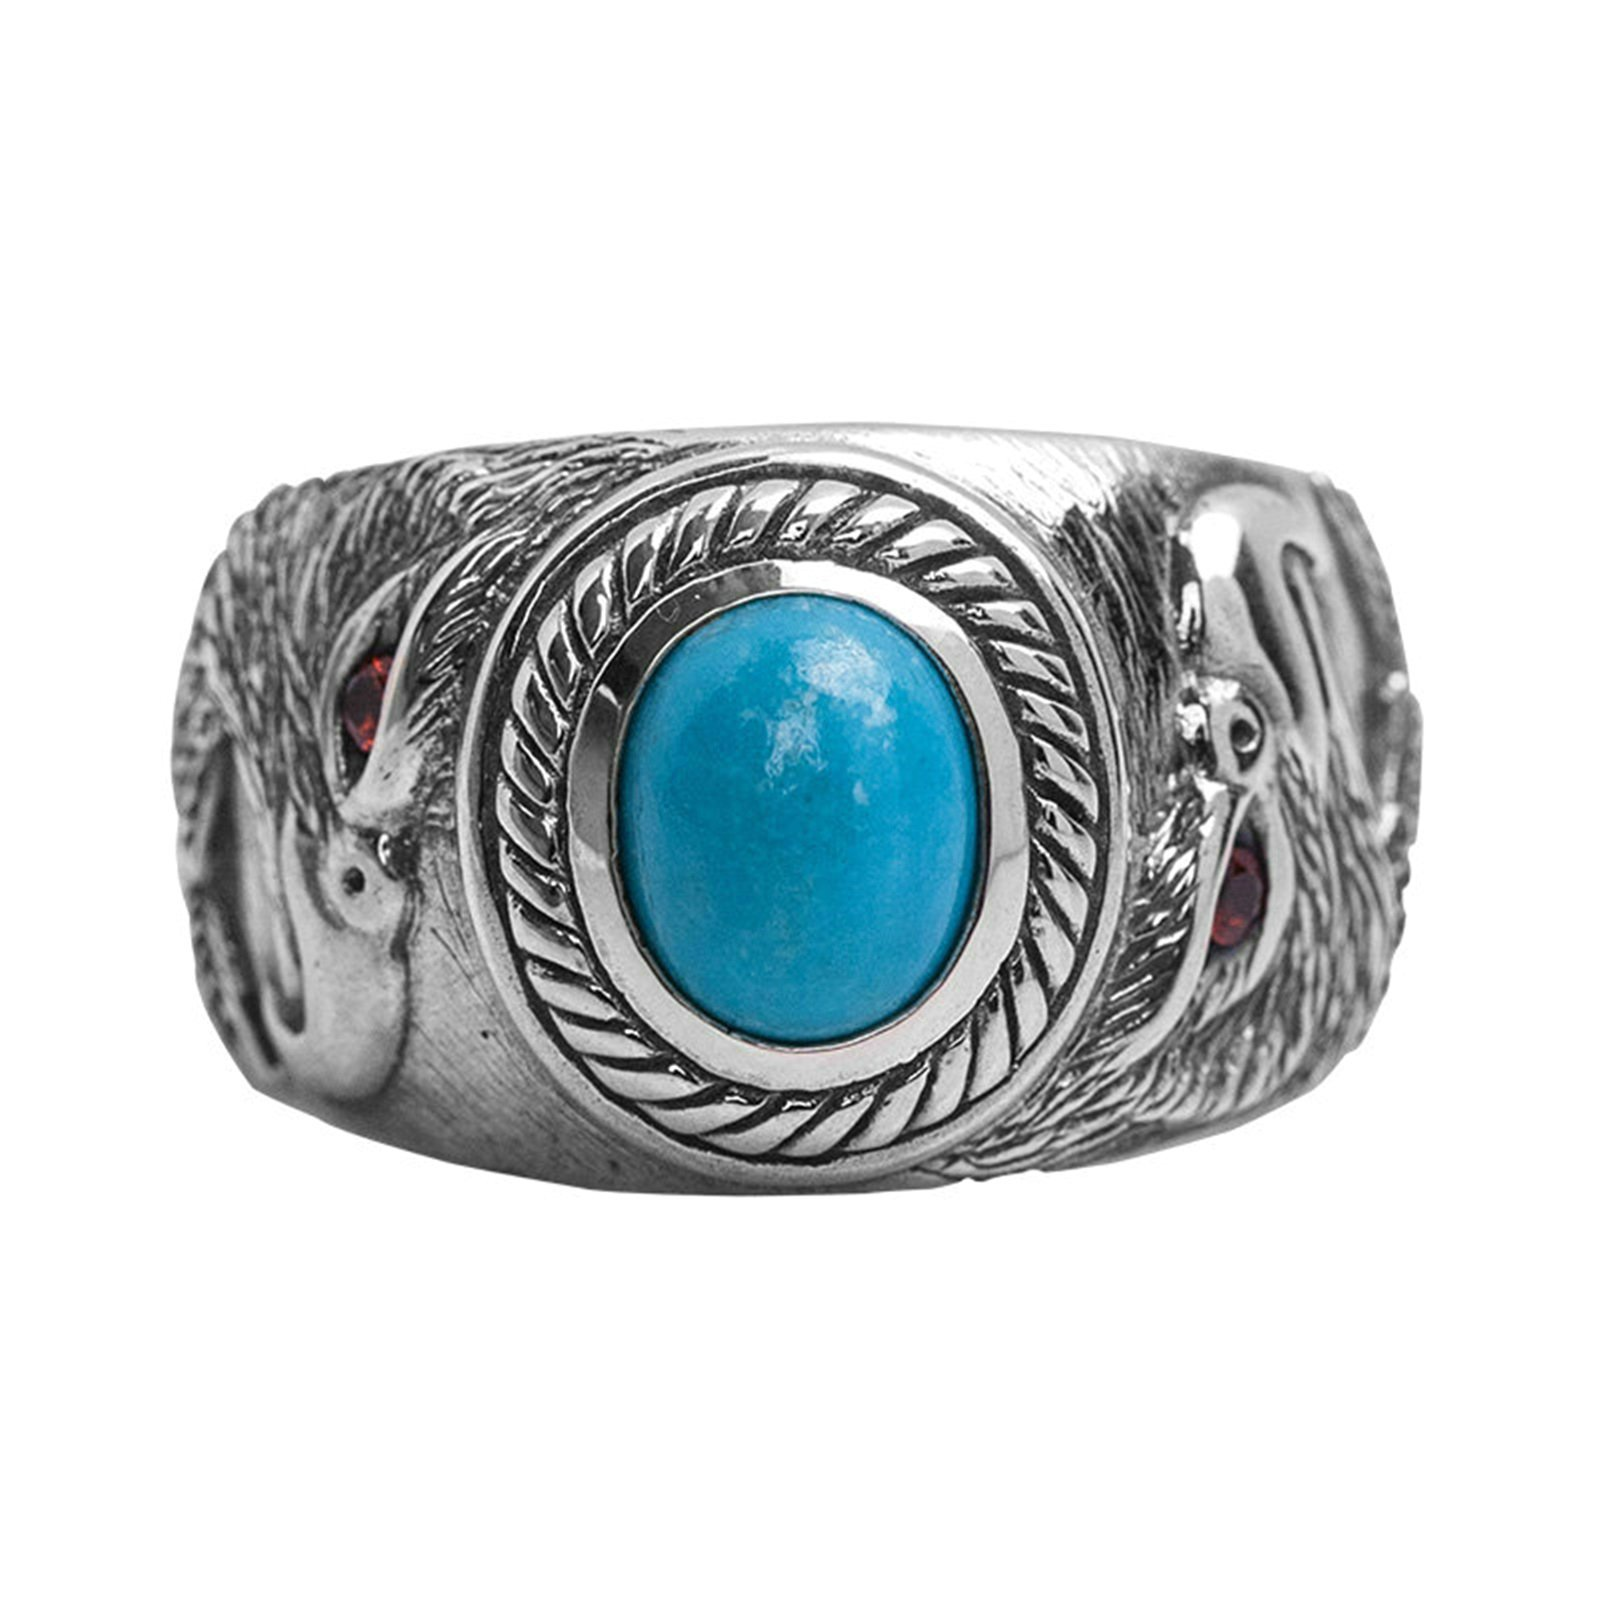 Anazoz S925 Sterling Silver Retro Style Created Turquoise Red CZ Eye Eagle Rings Punk Size 7.5 by AnaZoz